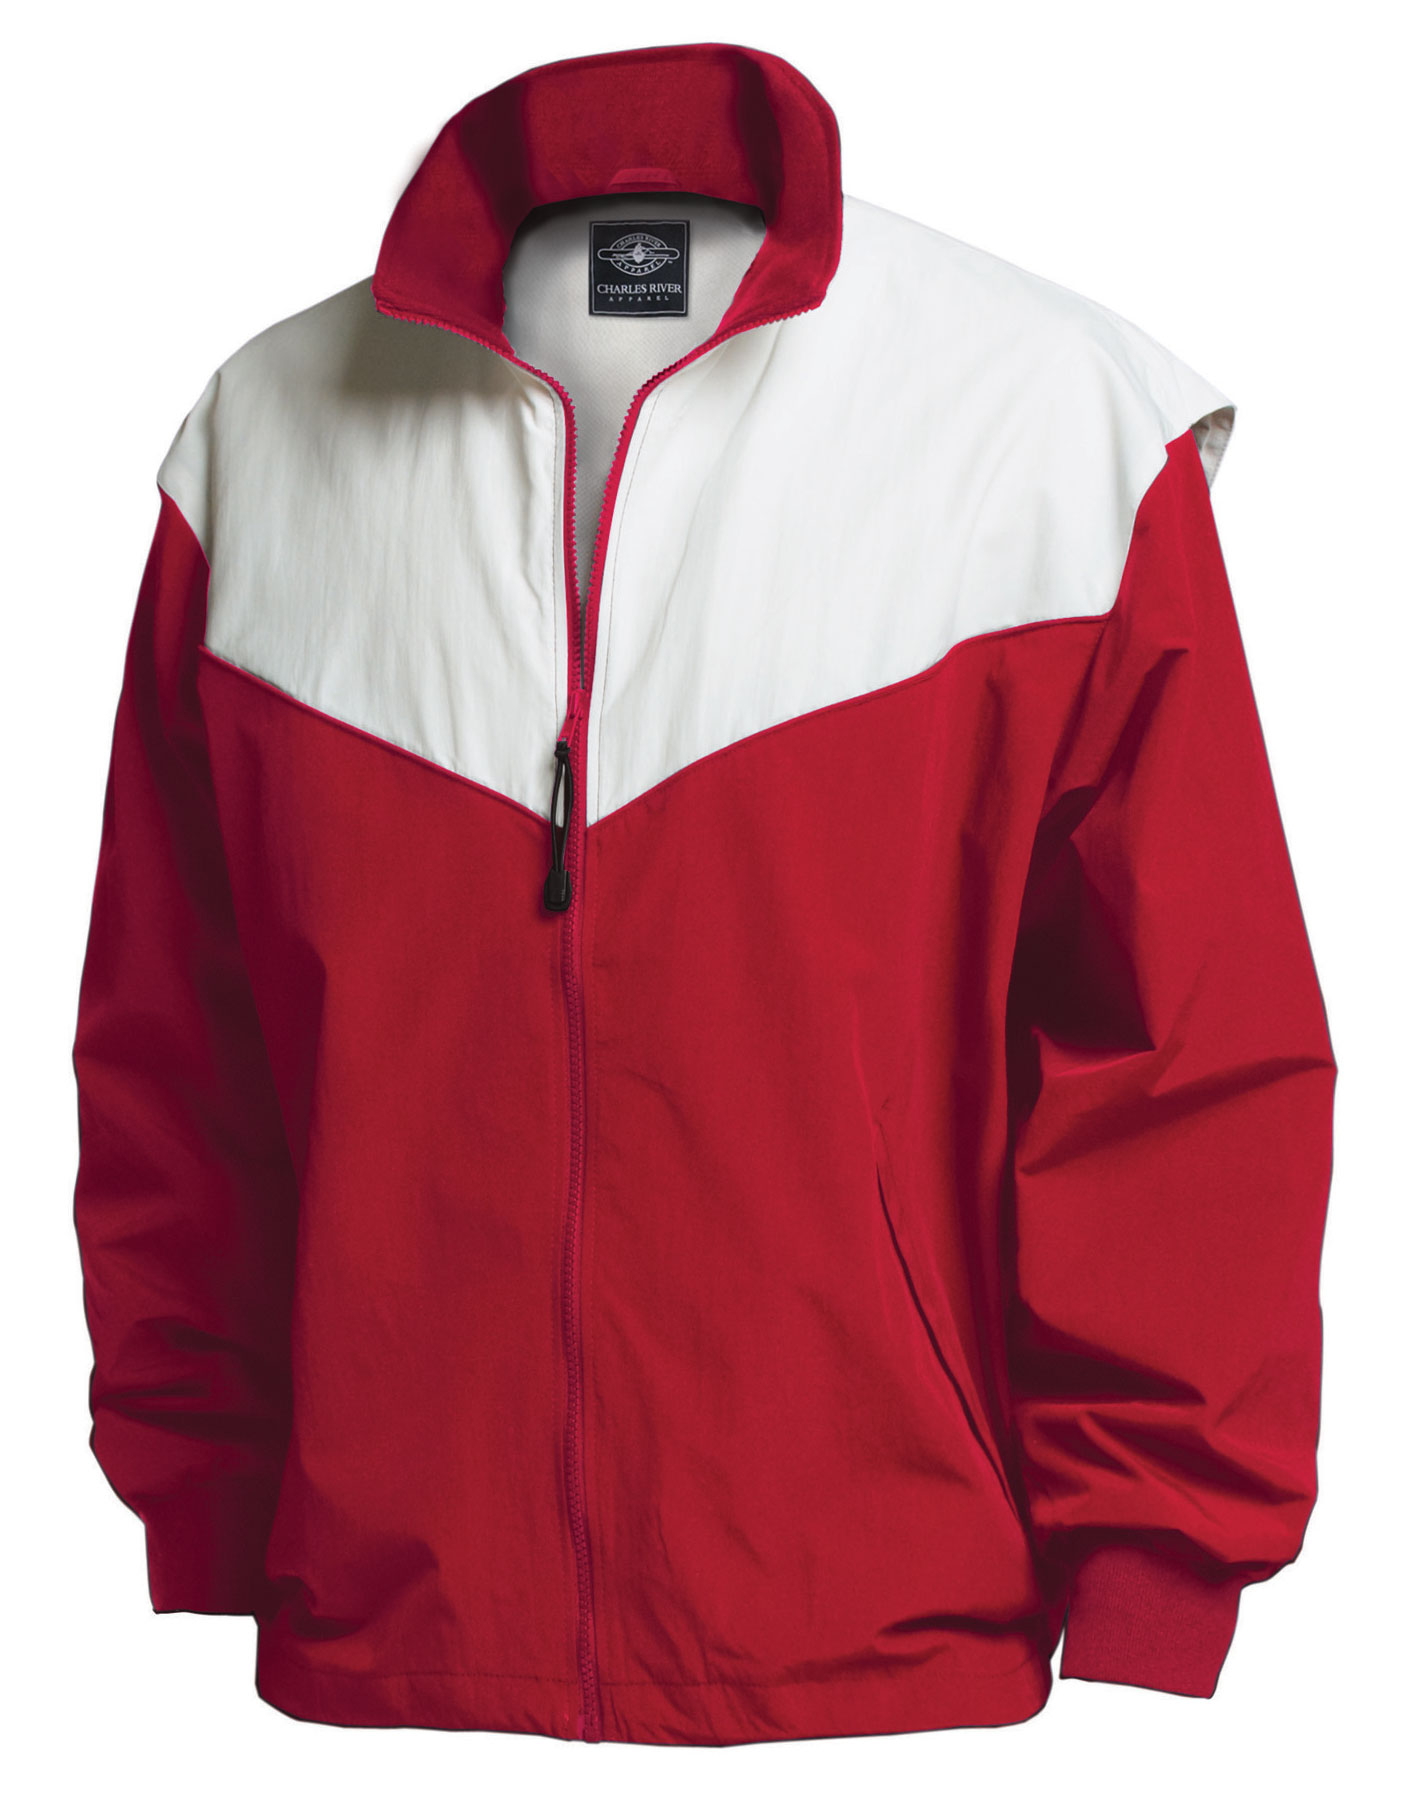 Charles River Youth Championship Team Jacket